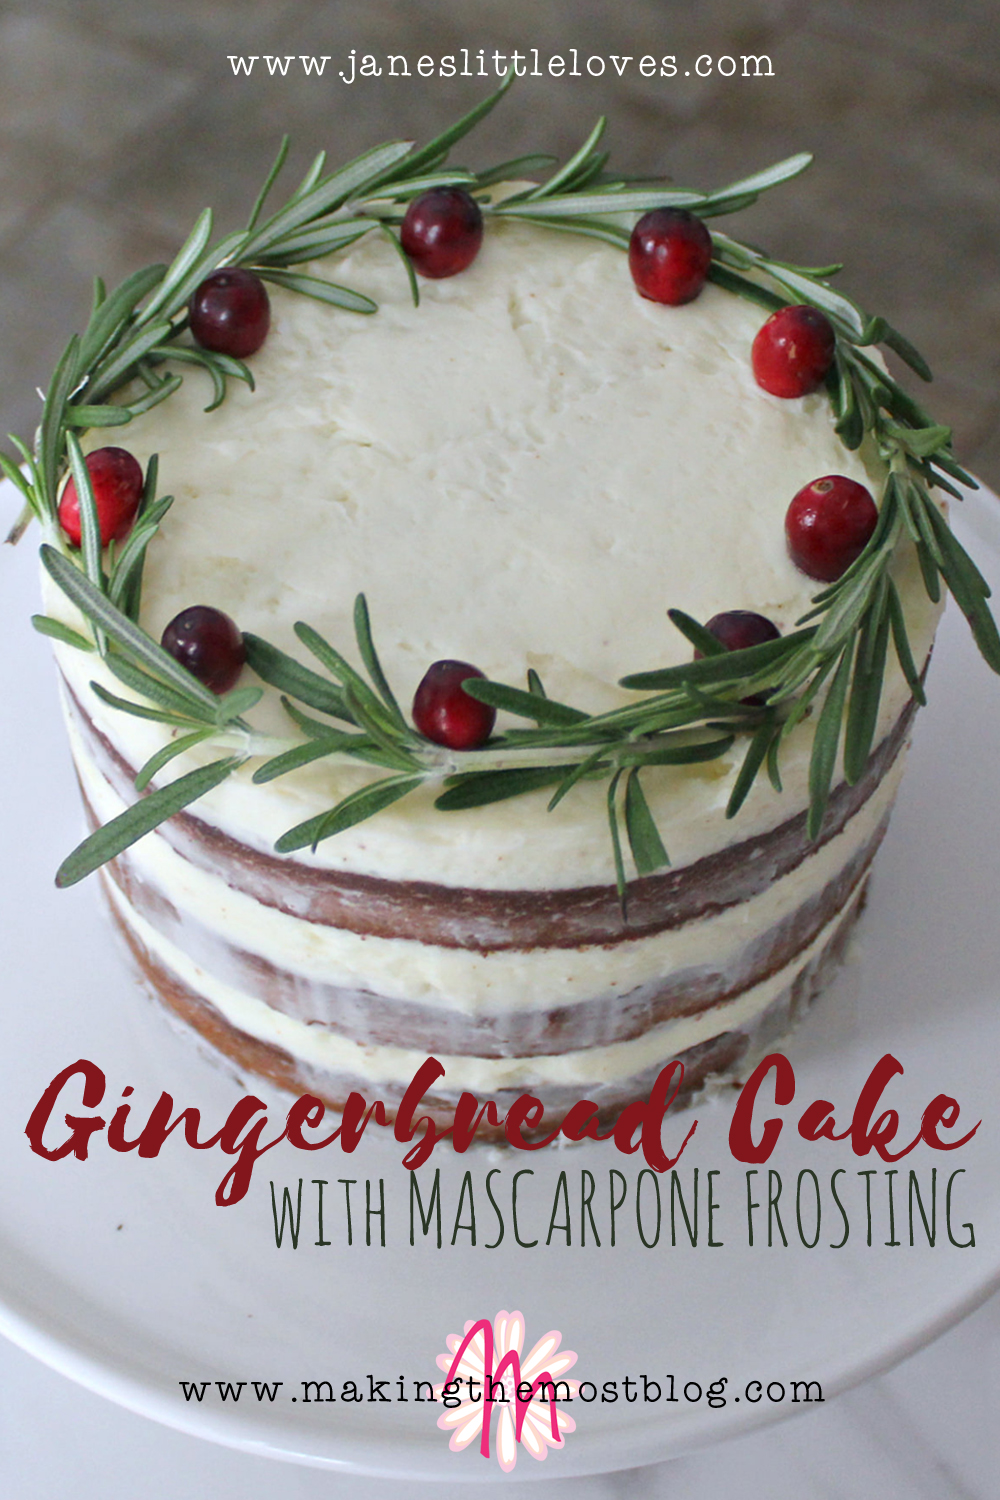 Gingerbread Cake with Marscapone Frosting Recipe | Making the Most Blog